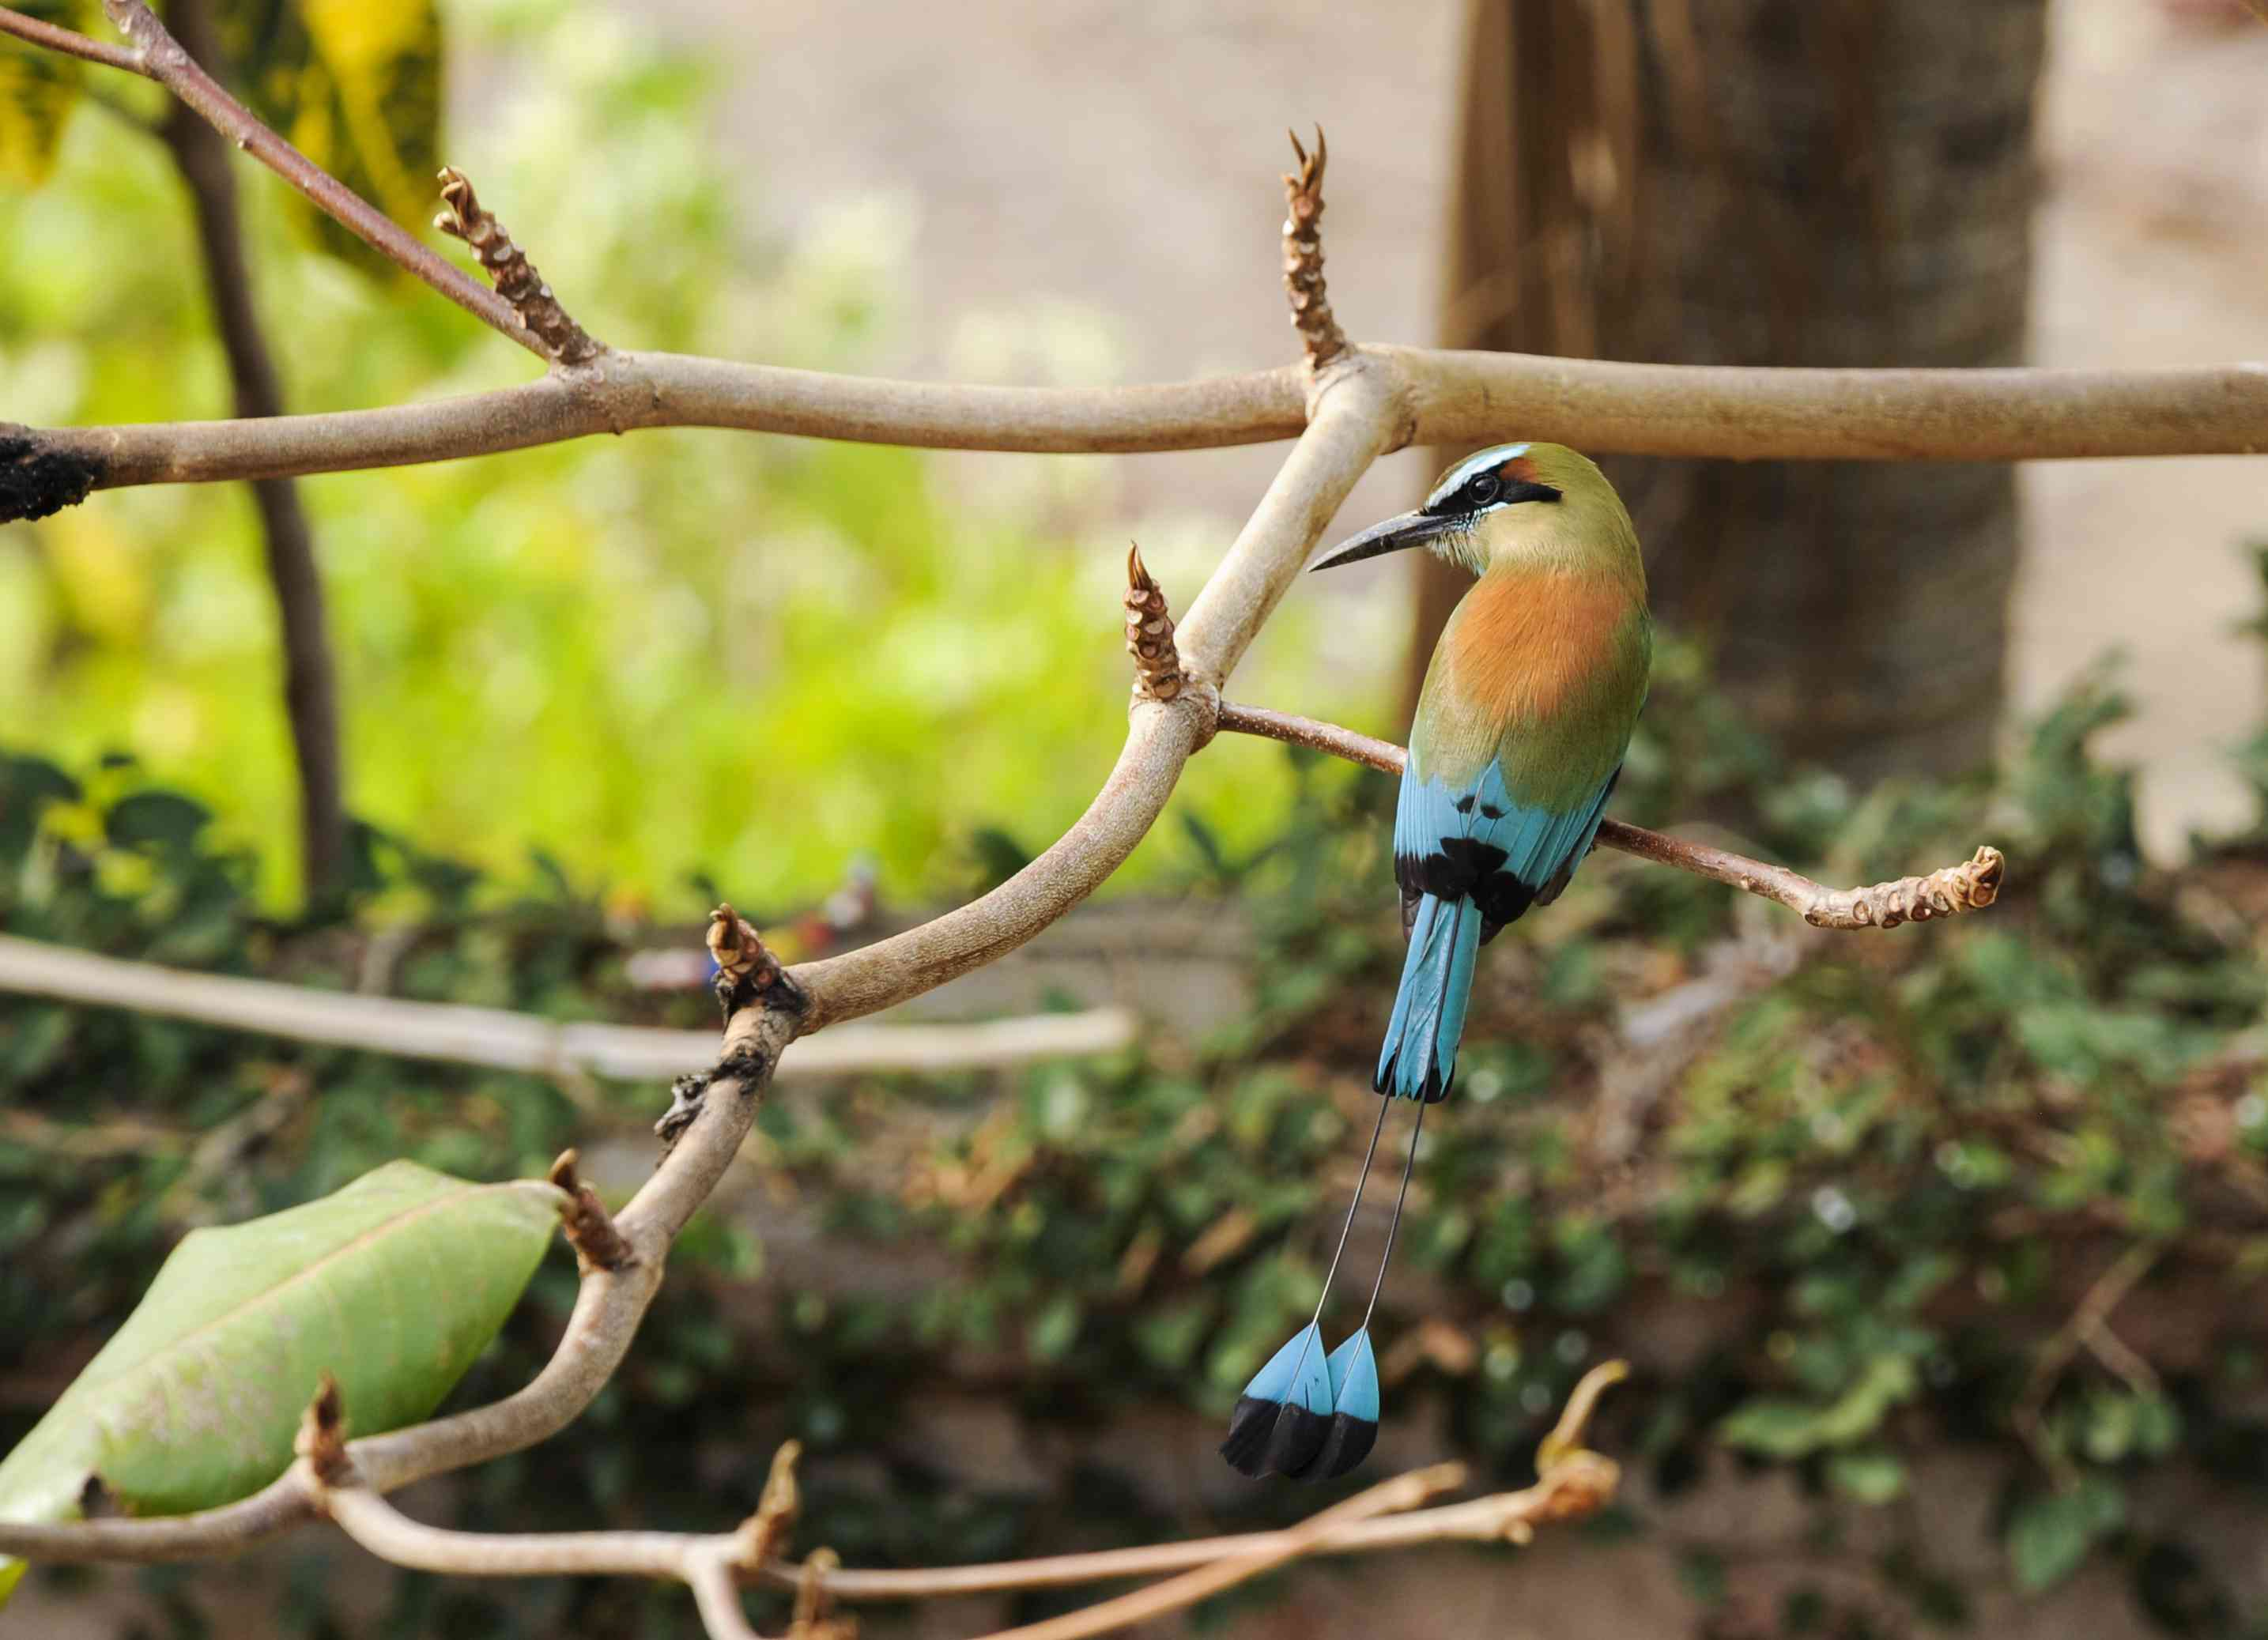 The turquoise-browed motmot bird perches on branch high up in a tree